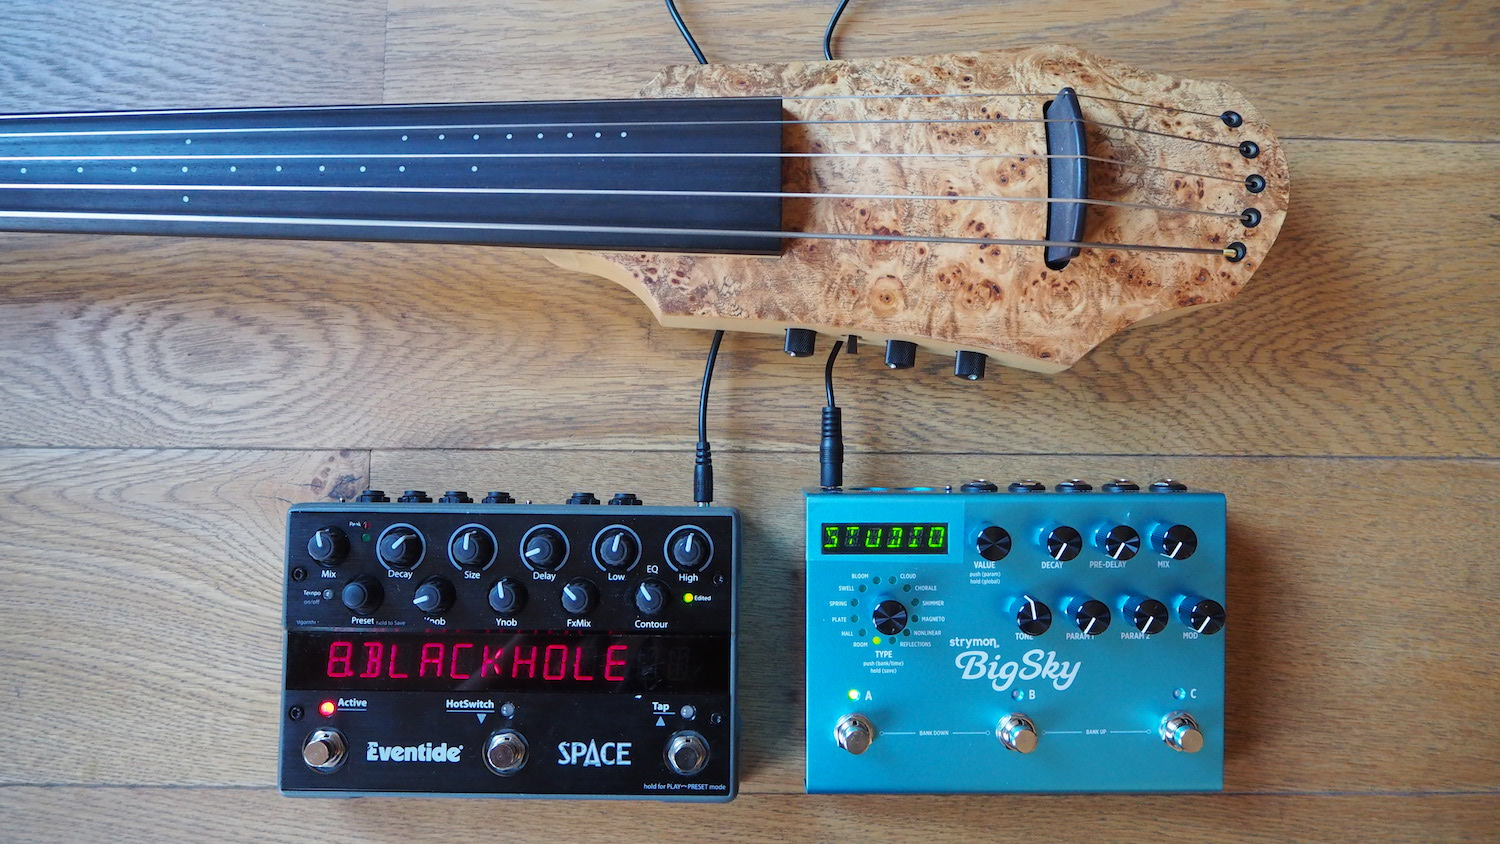 Eventide-Space-vs-Strymon-Big-Sky-reverb-pedal-electric-cello-The-Wong-Janice-music-producer-cellist-Amsterdam.JPG